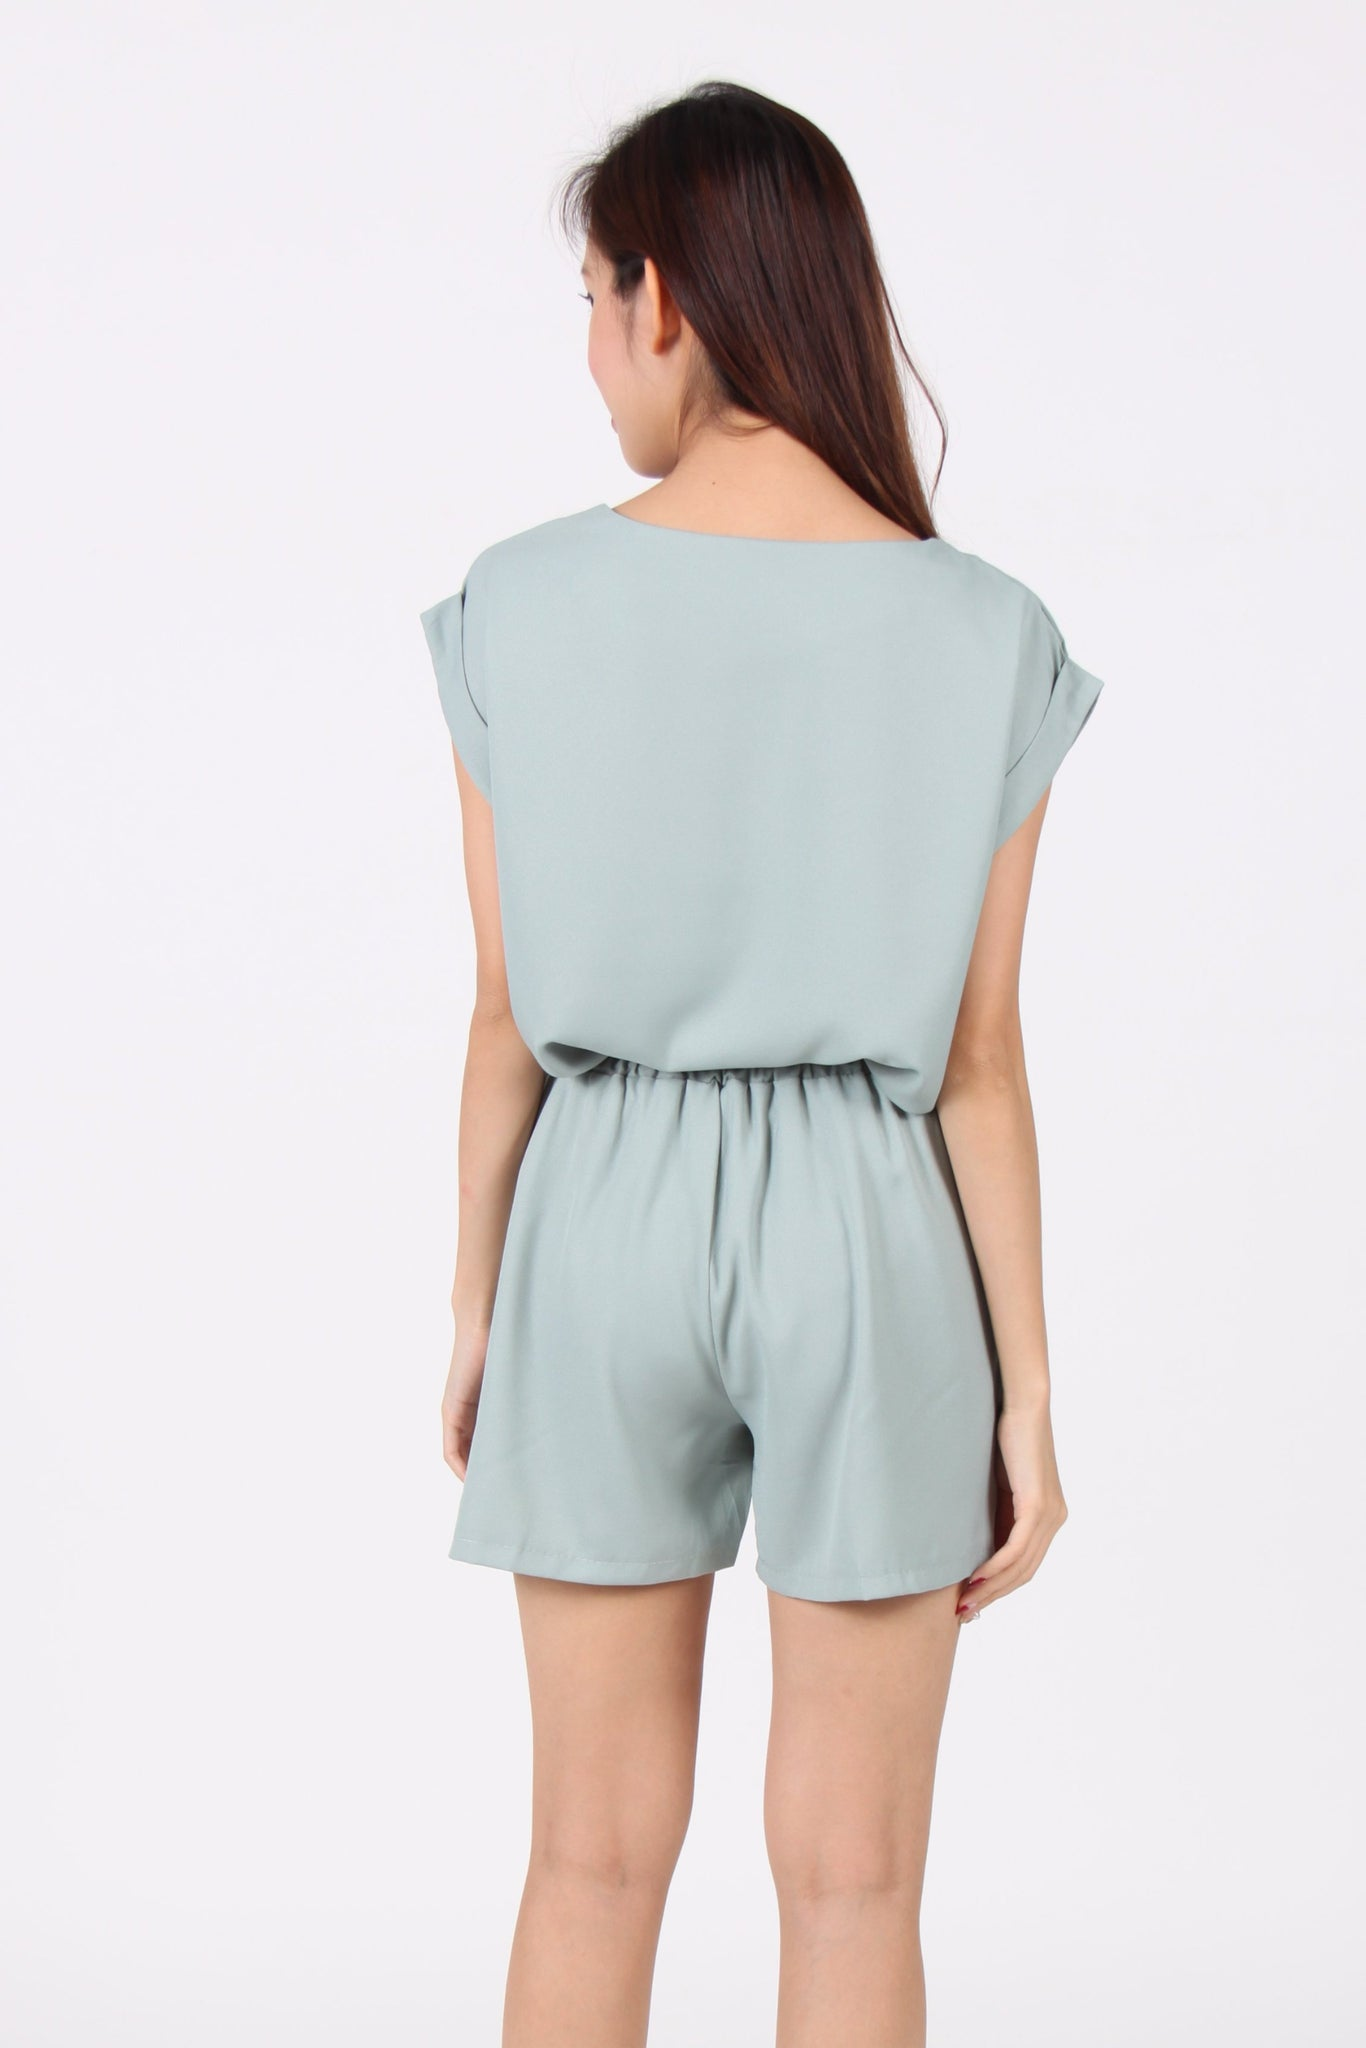 2 Piece Shorts Suit in Green